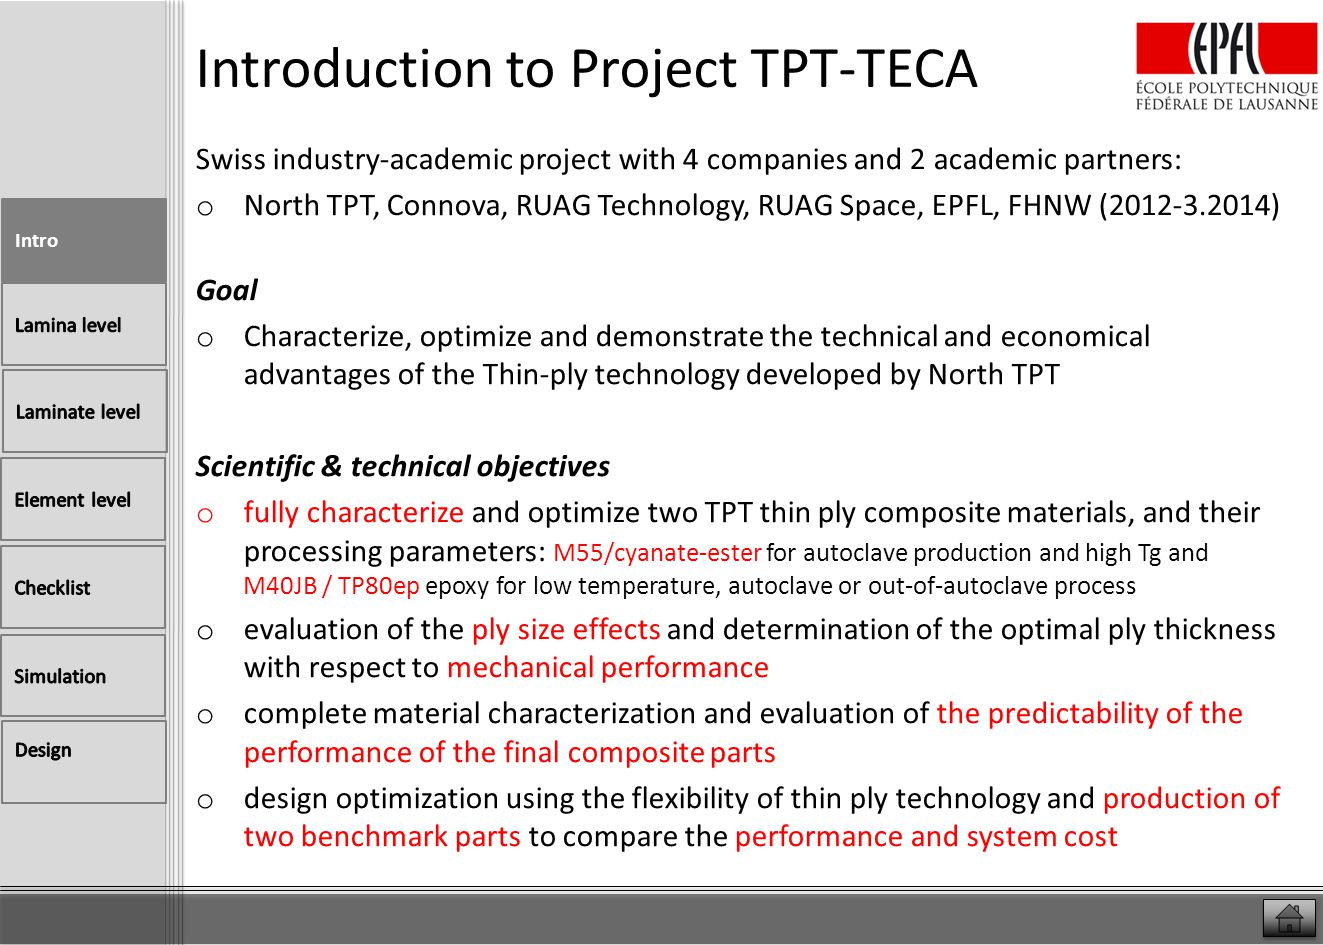 Introduction to Project TPT-TECA